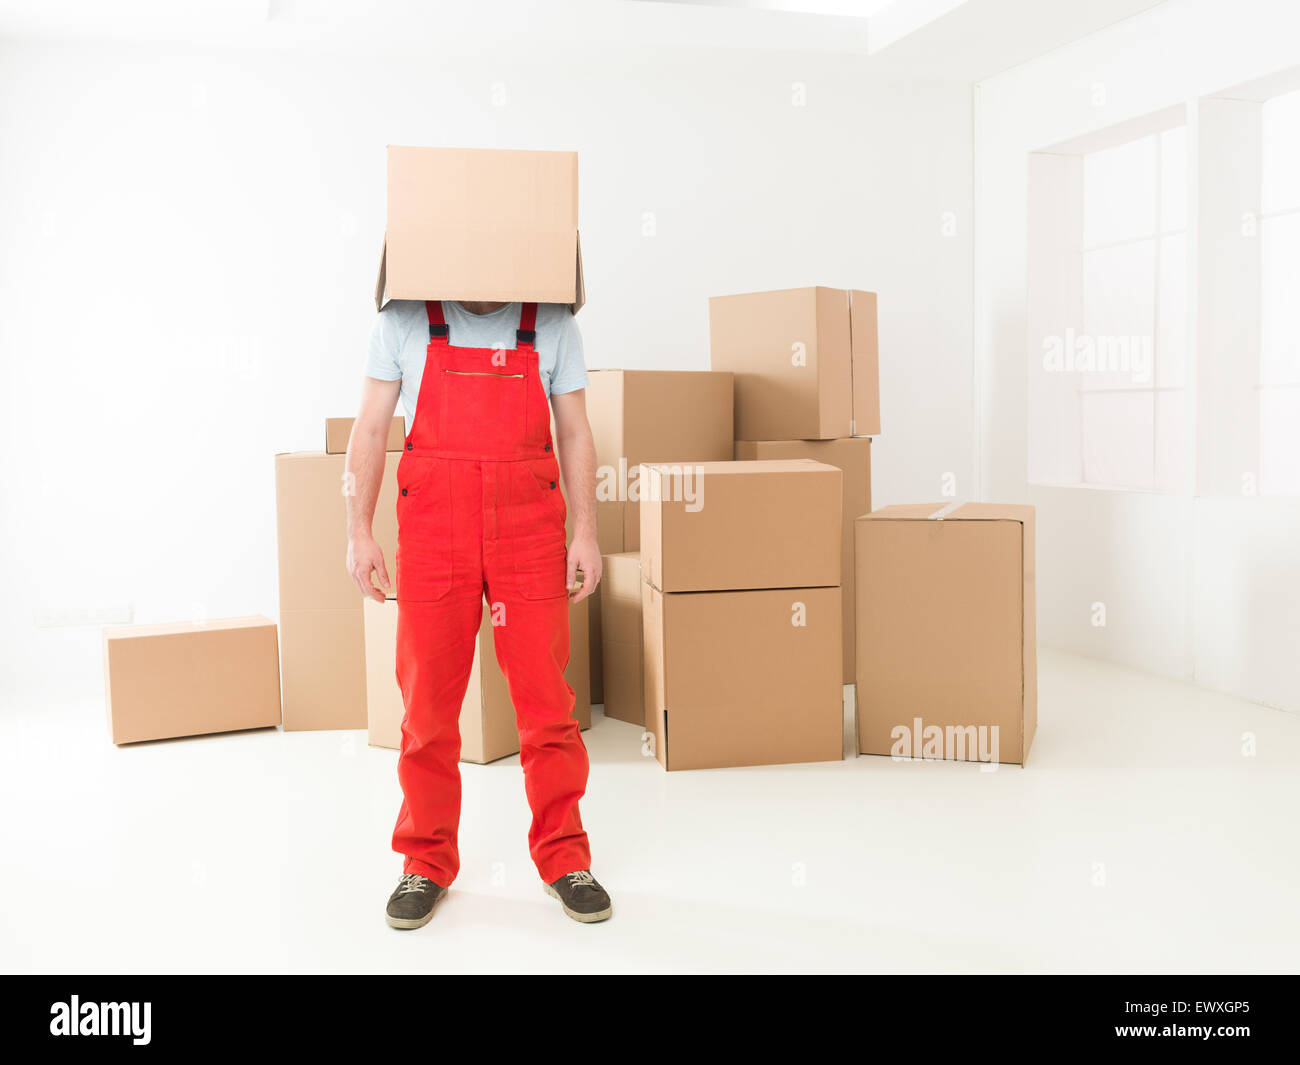 front view of deliveryman standing in new house with box covering his head. copy space available - Stock Image